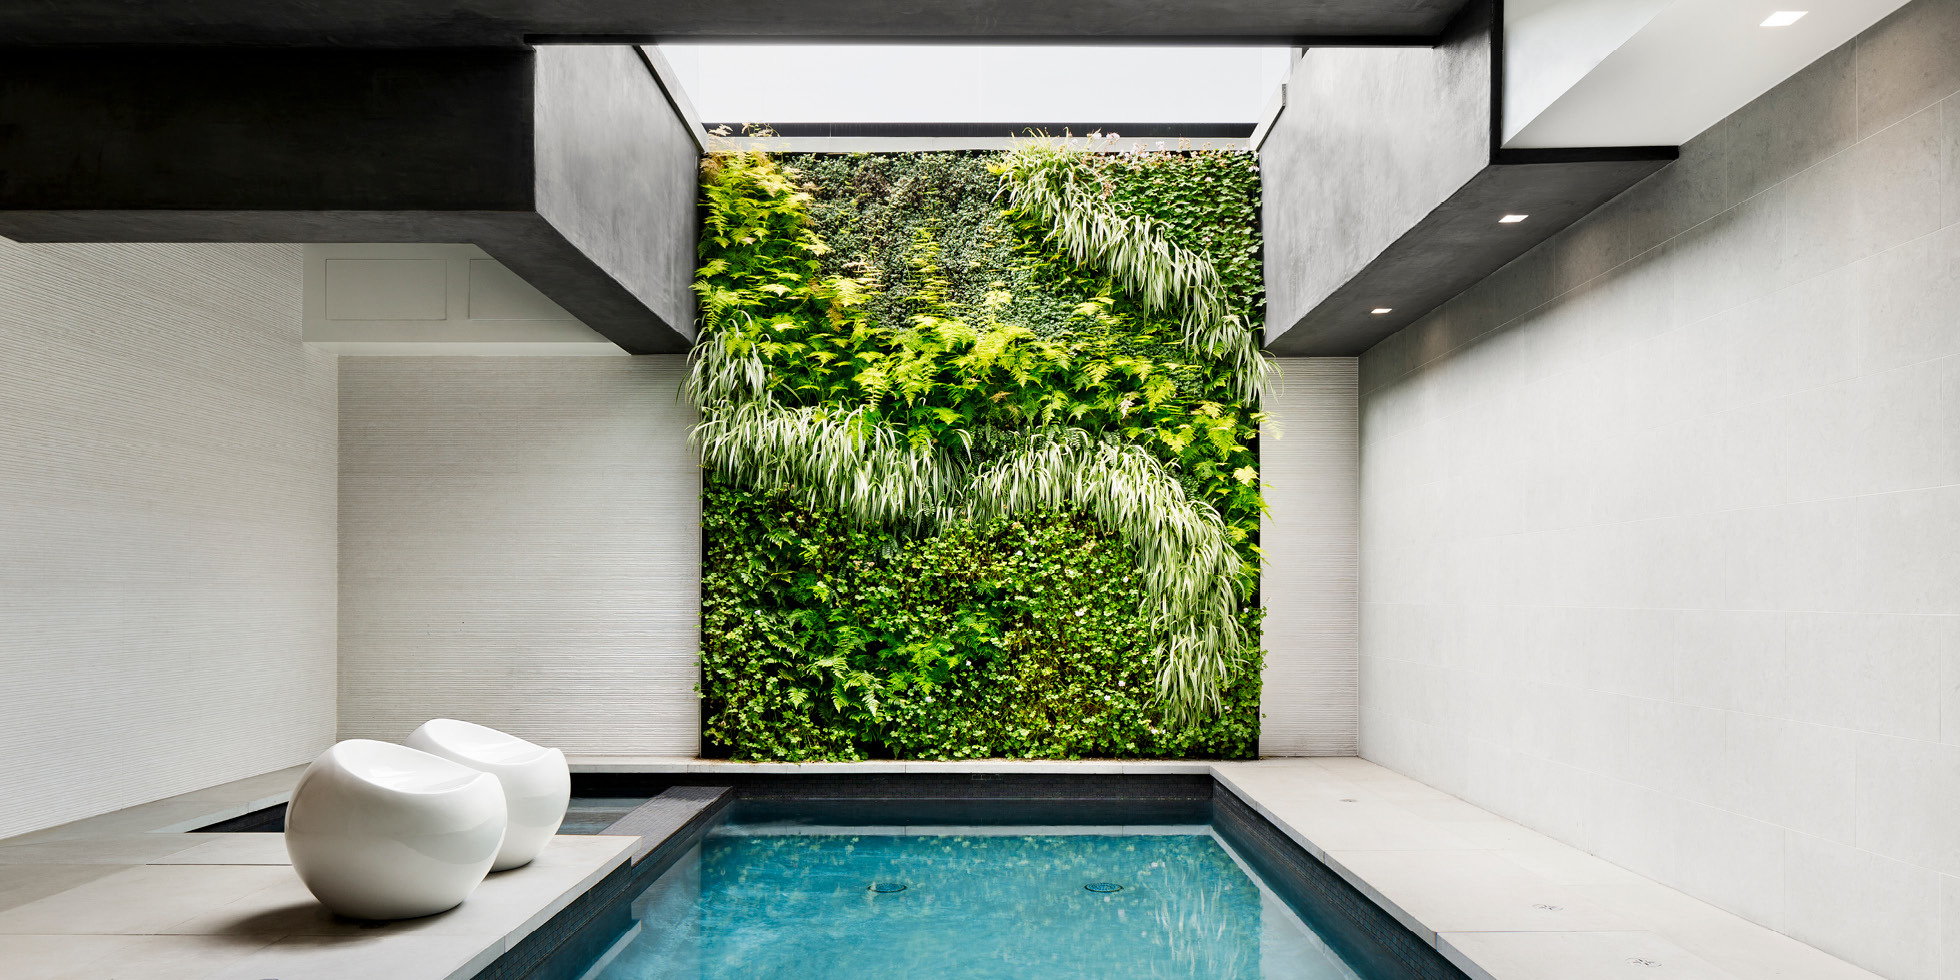 Hollywood Hills Poolside Retreat Living Wall by Habitat Horticulture - View 1